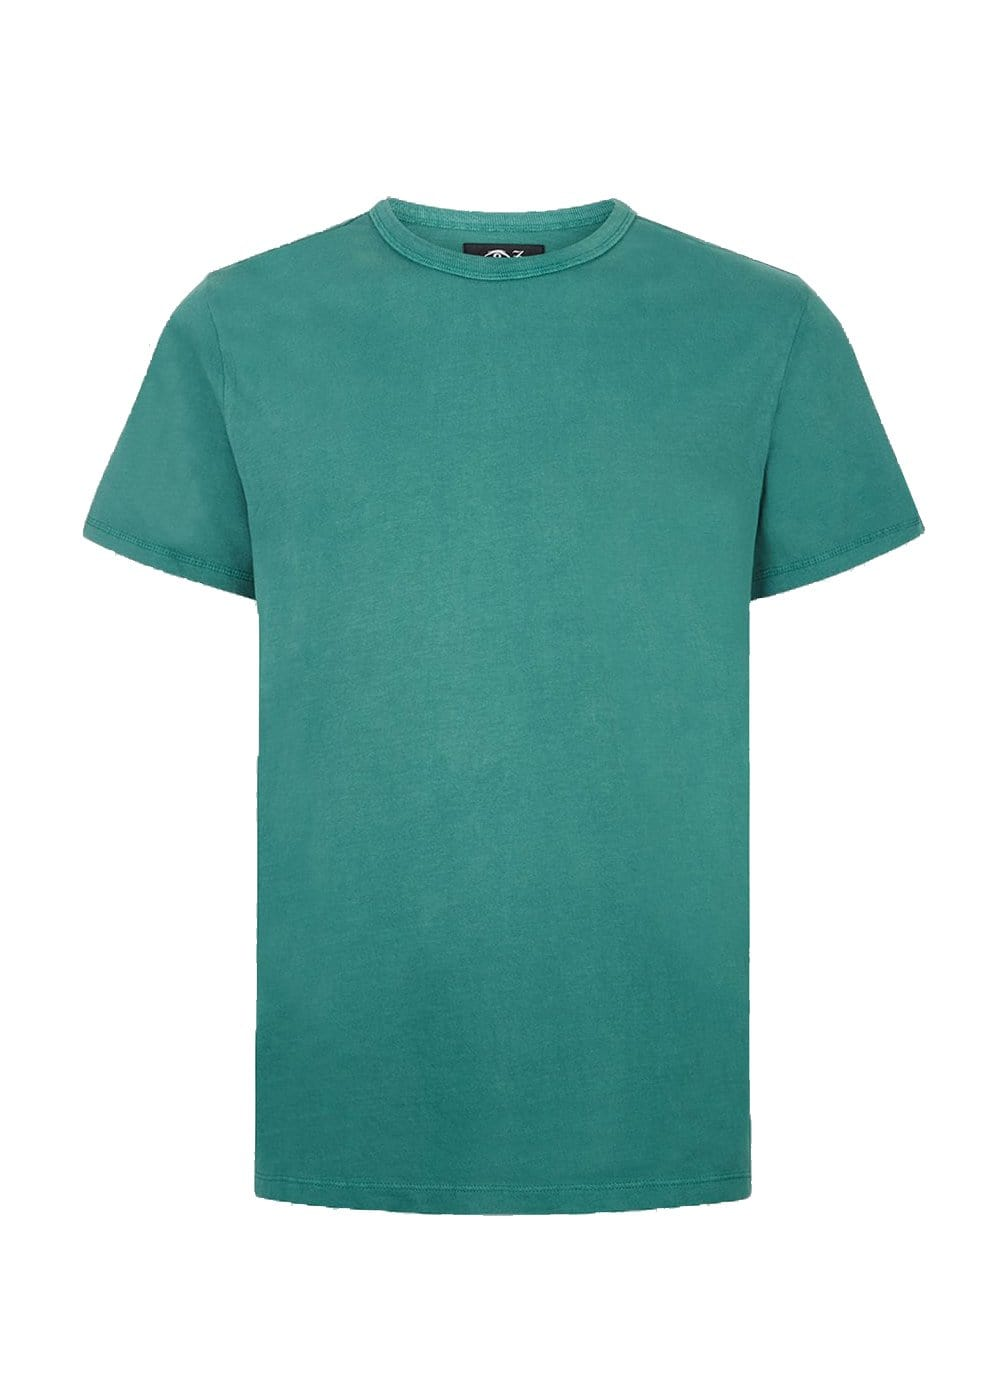 TeenzShop  Boys Green Graphic Logo T-shirt